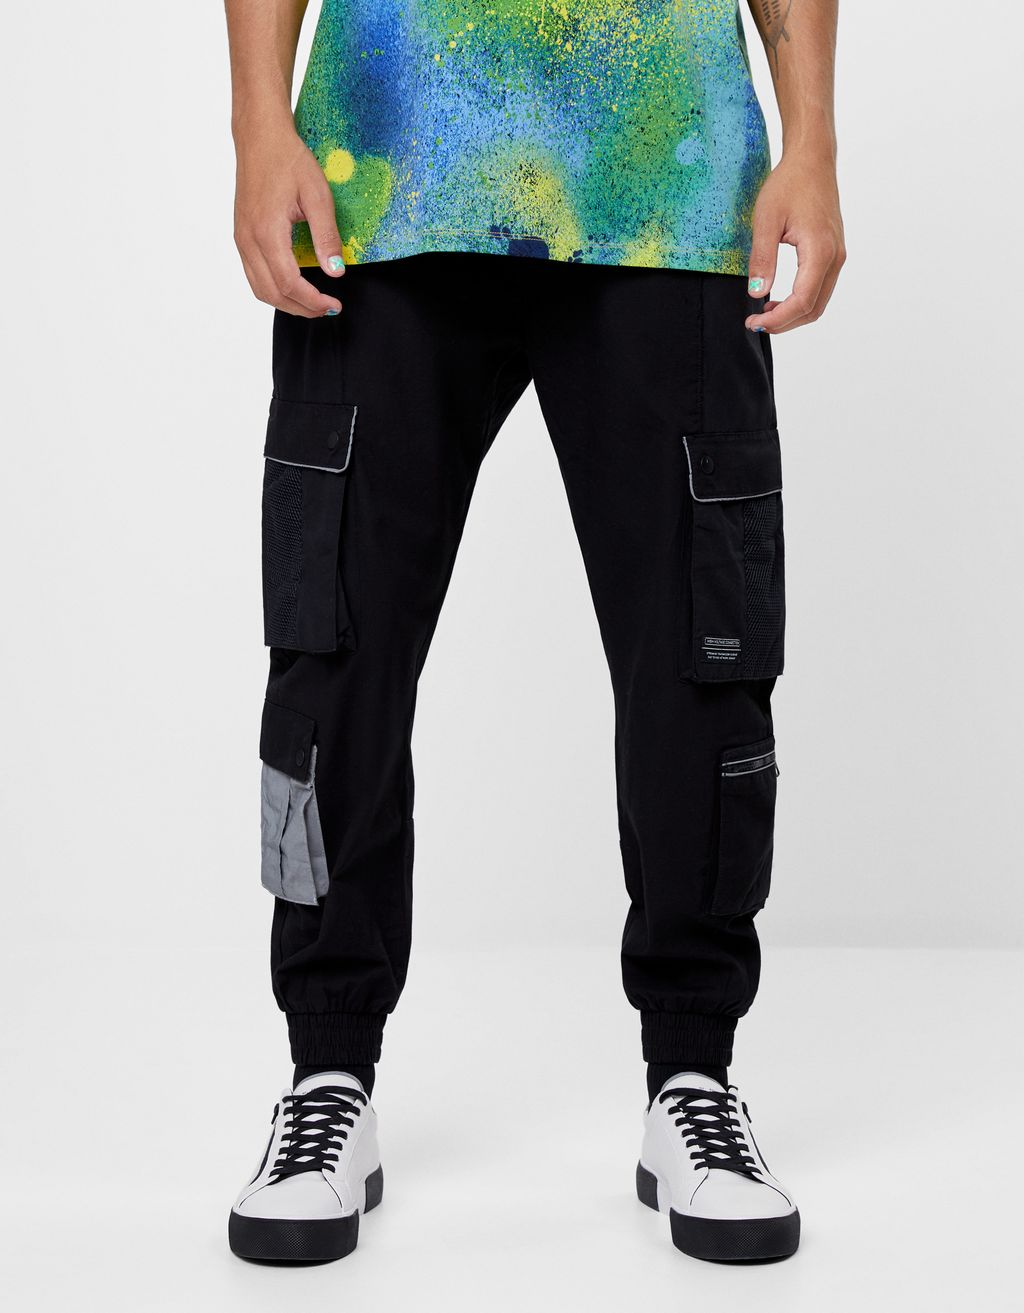 FUTURE-READY cargo trousers